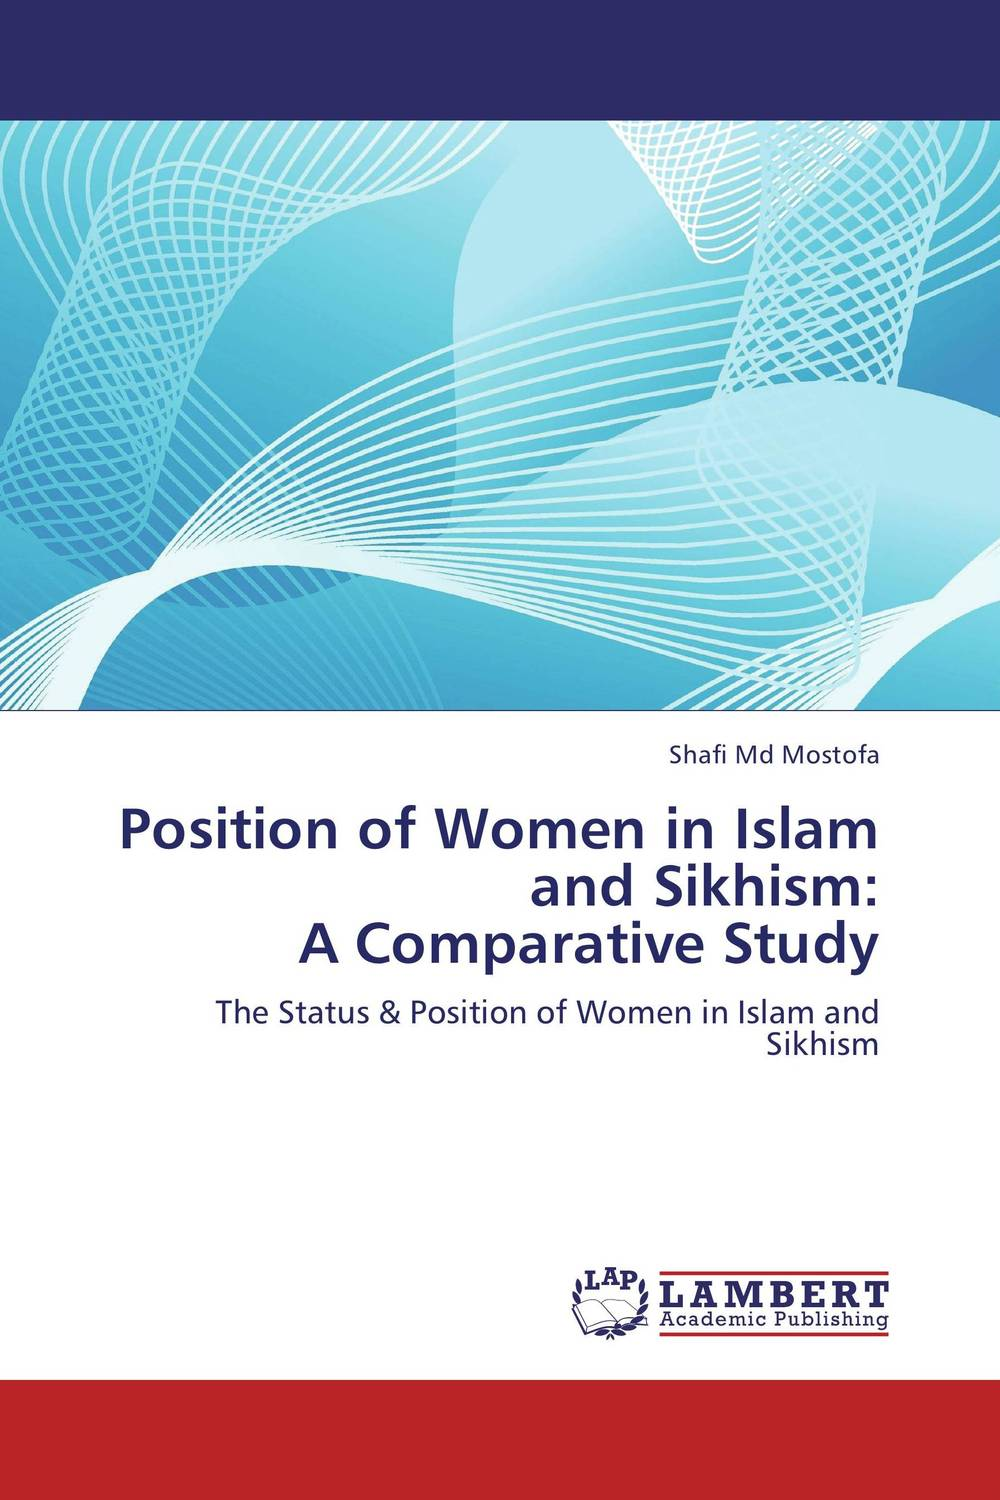 a comparison between american women and women of islam Comparing christianity and islam women have an inferior status in it is important that we recognize the significant differences between christianity and islam.